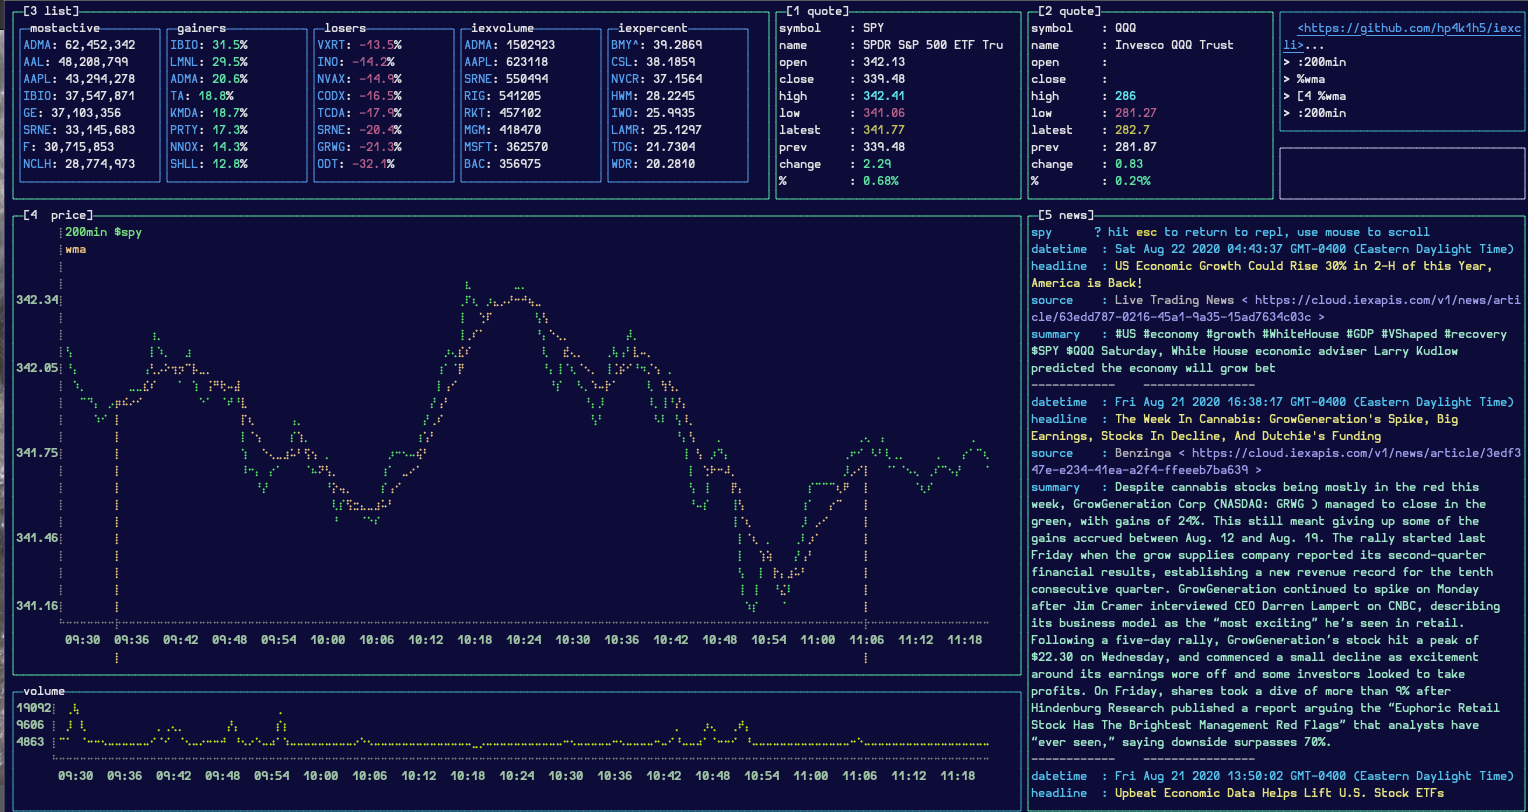 screenshot of a terminal window displaying a stock chart, activegainers/losers, and stock related news